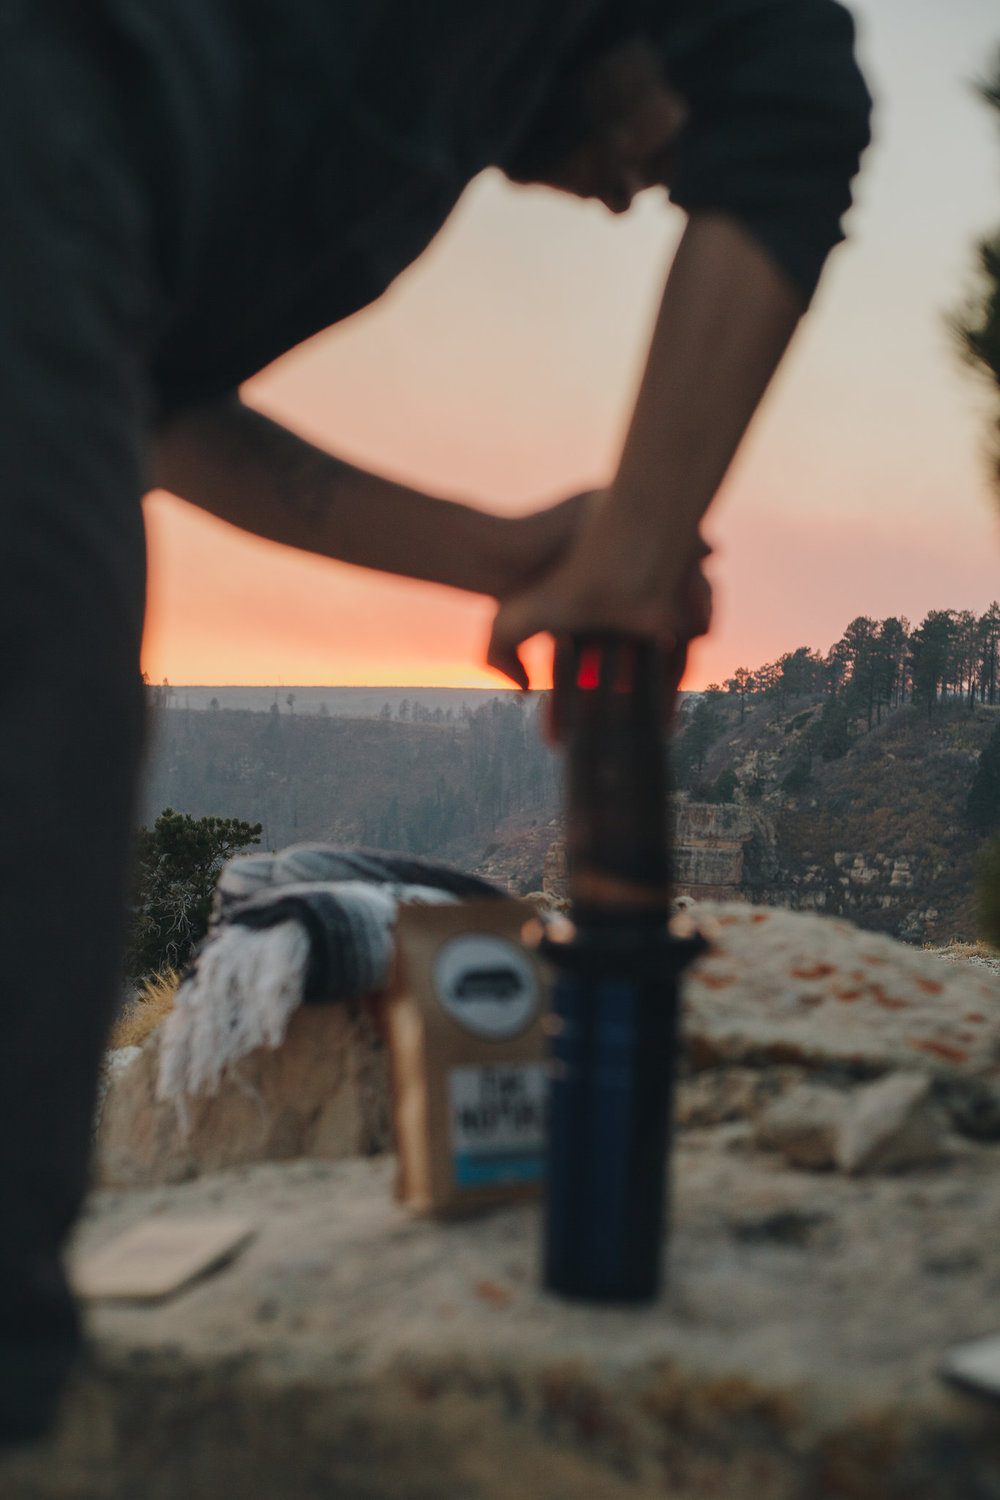 Pressing Aeropress with Grand Canyon sunset view